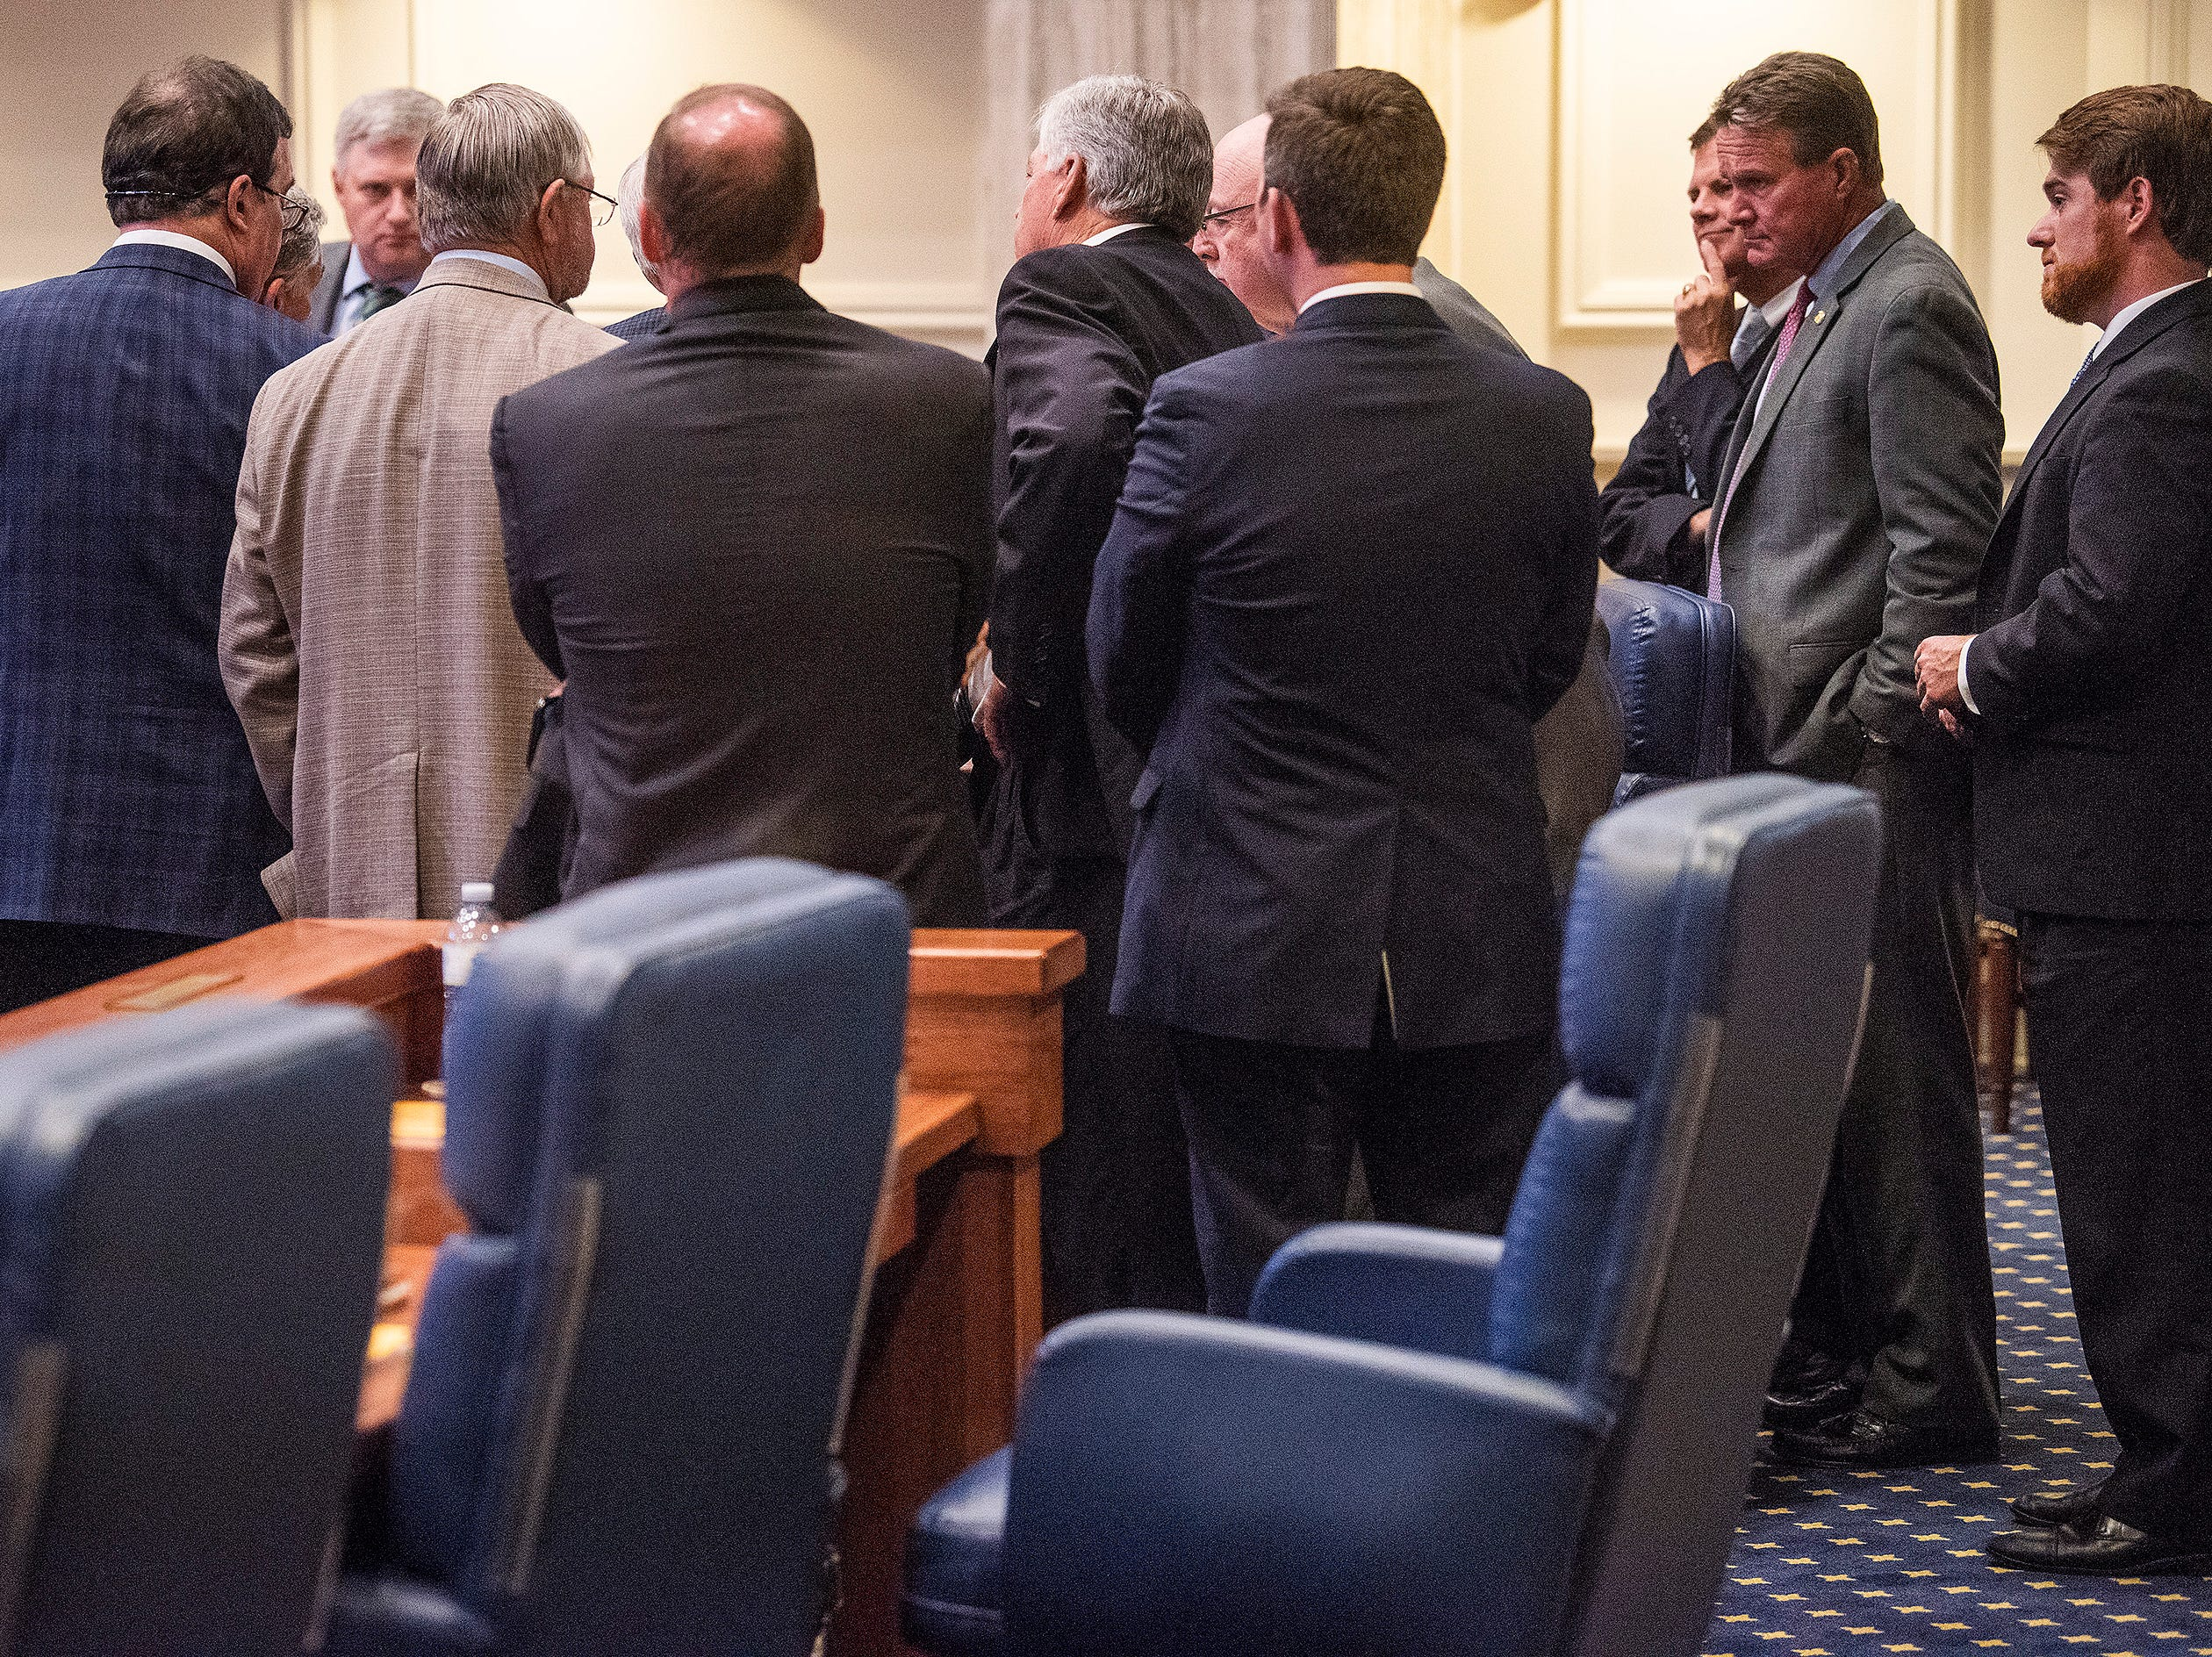 Republican Senators group together as debate on HB314, the near-total ban on abortion bill, is held in the senate chamber in the Alabama Statehouse in Montgomery, Ala., on Tuesday May 14, 2019.